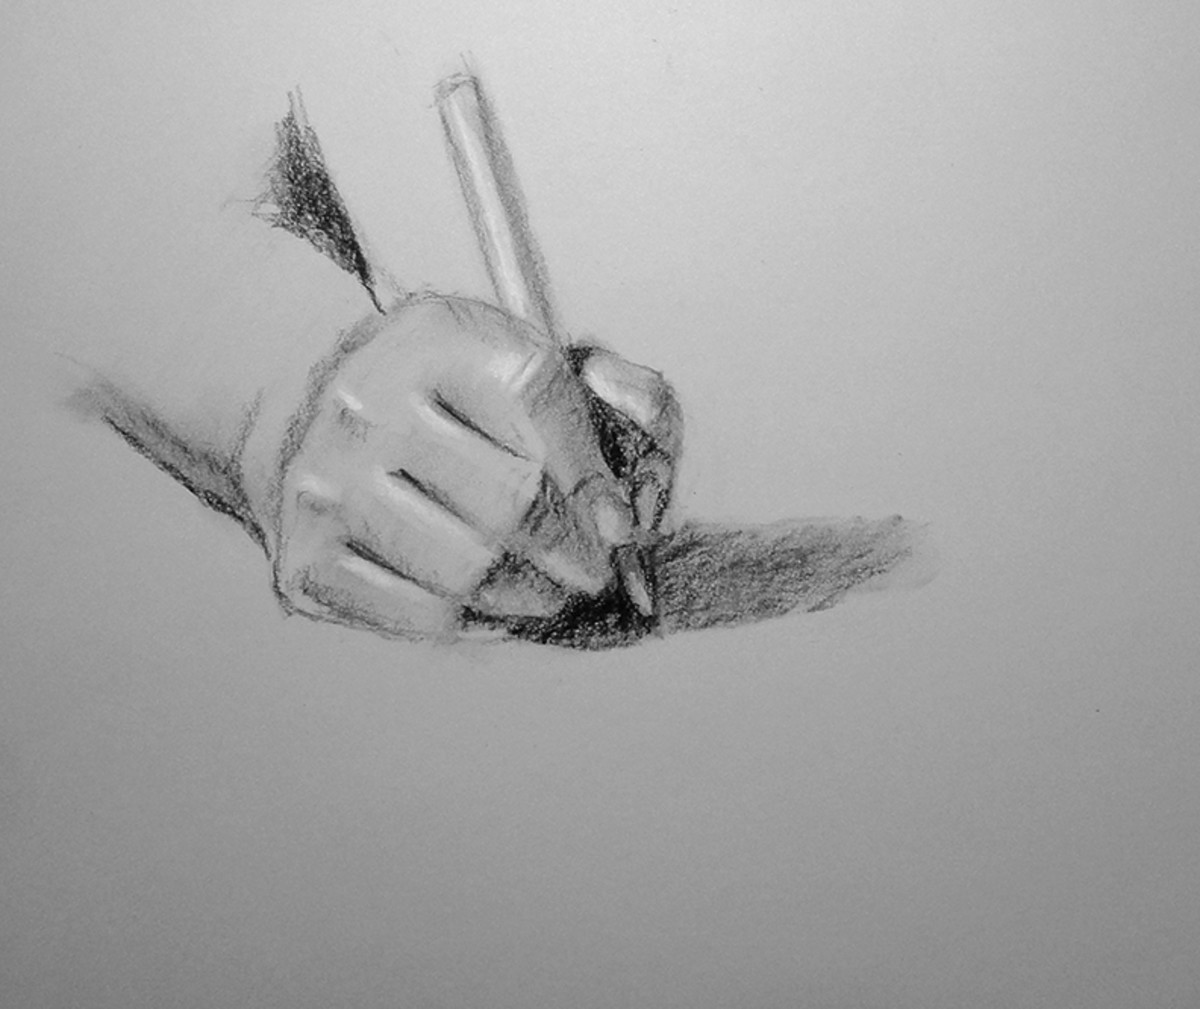 Charcoal drawing of a hand, #1